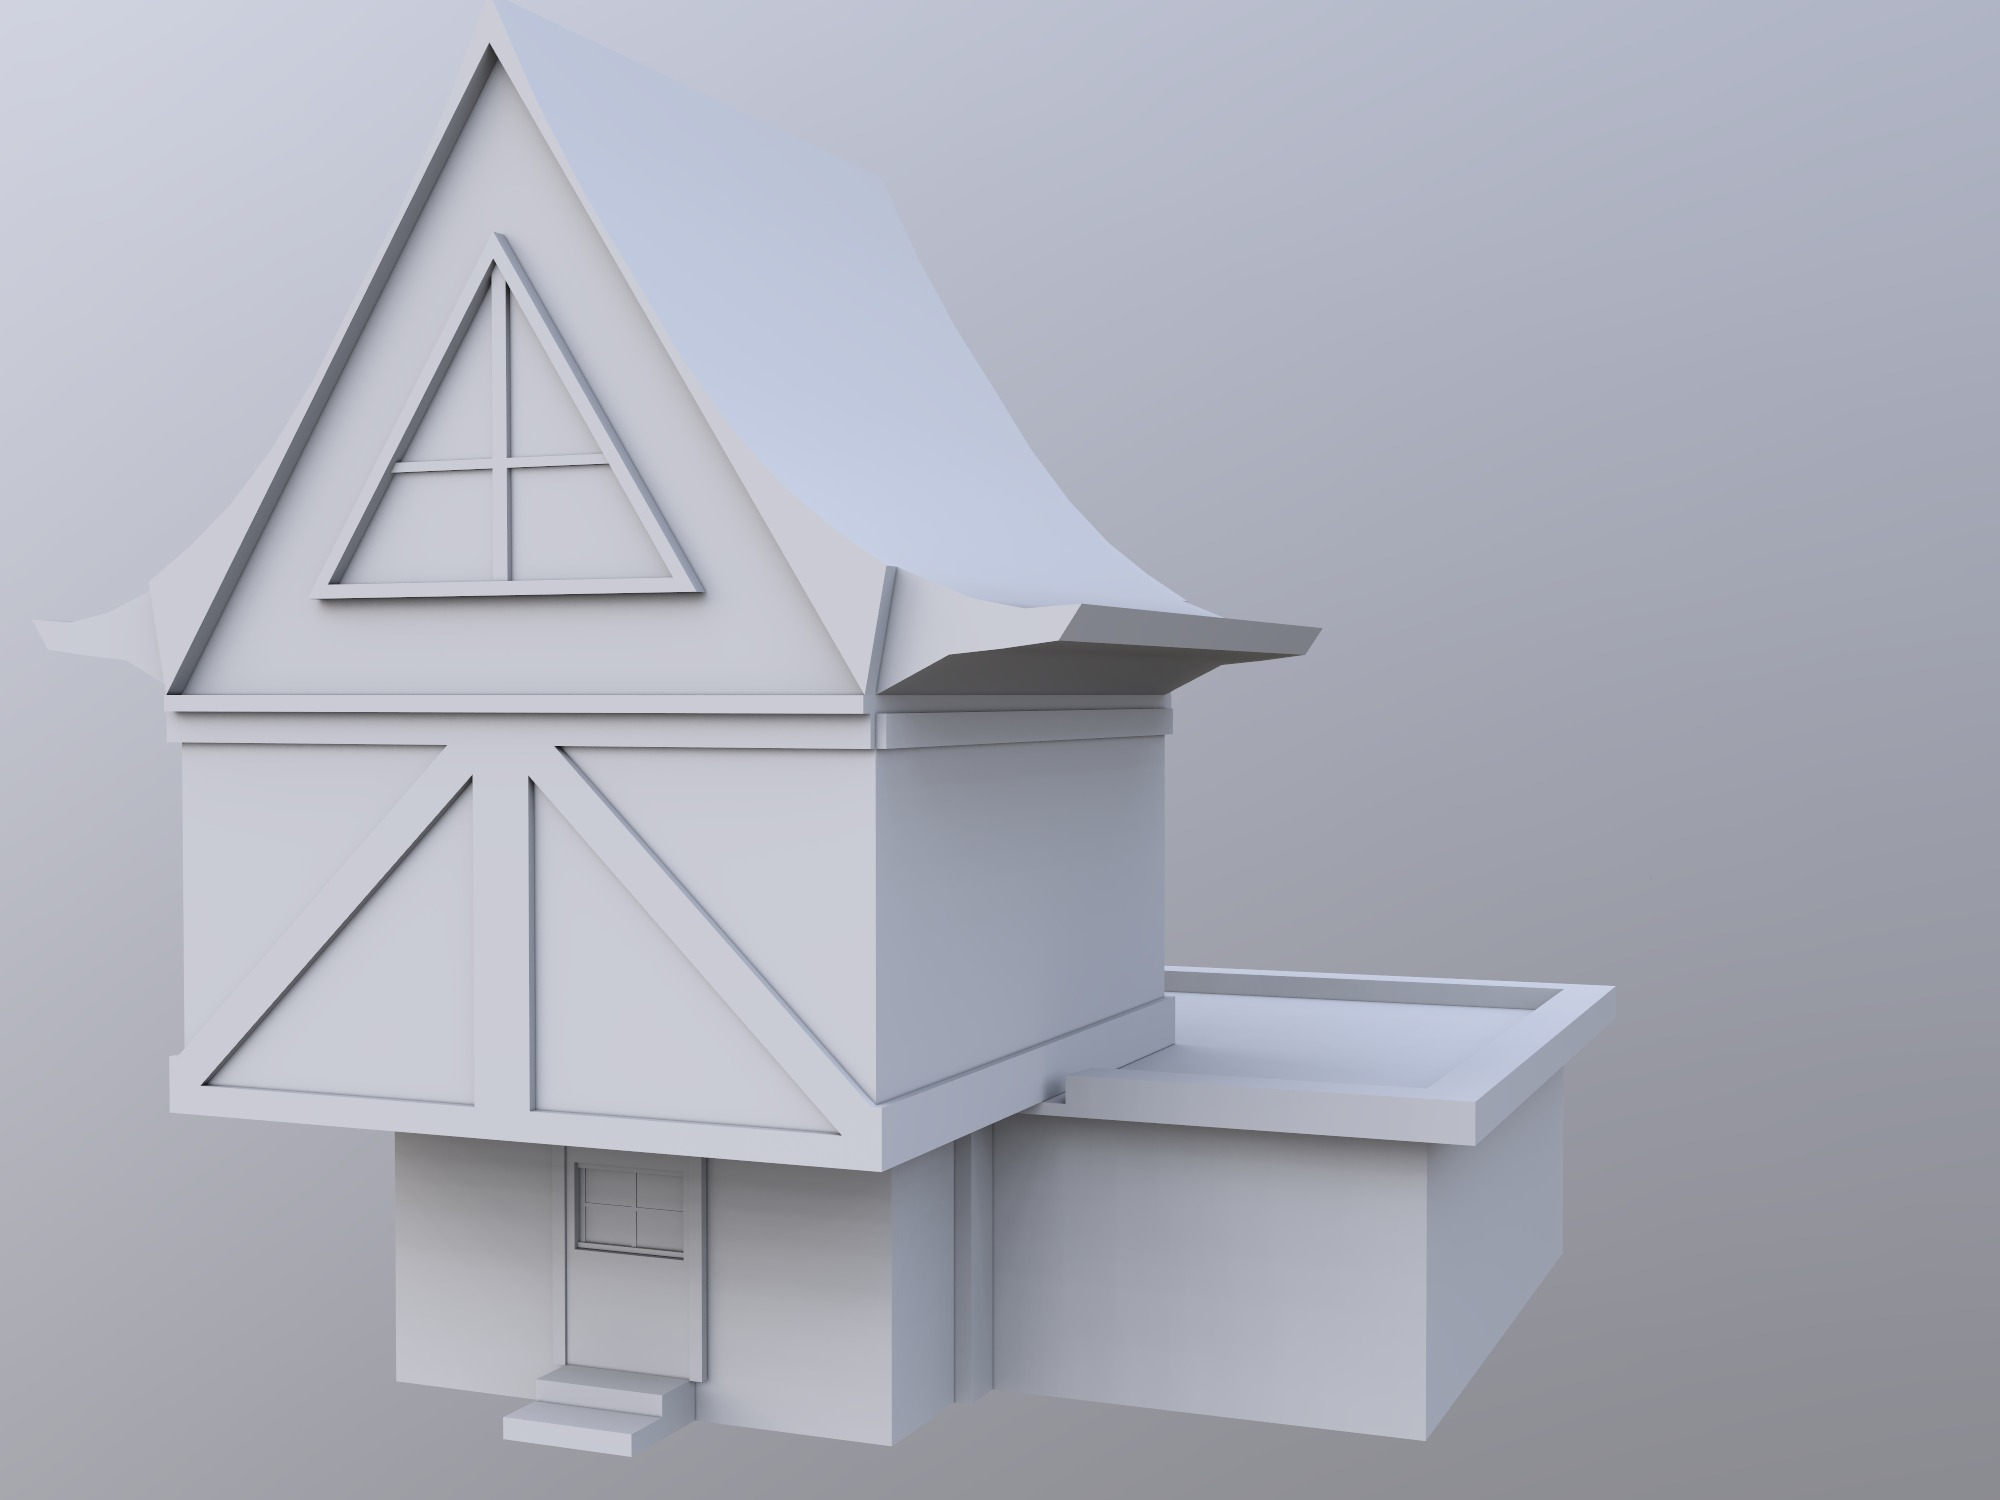 House - 3D design by sean-booth Oct 11, 2018